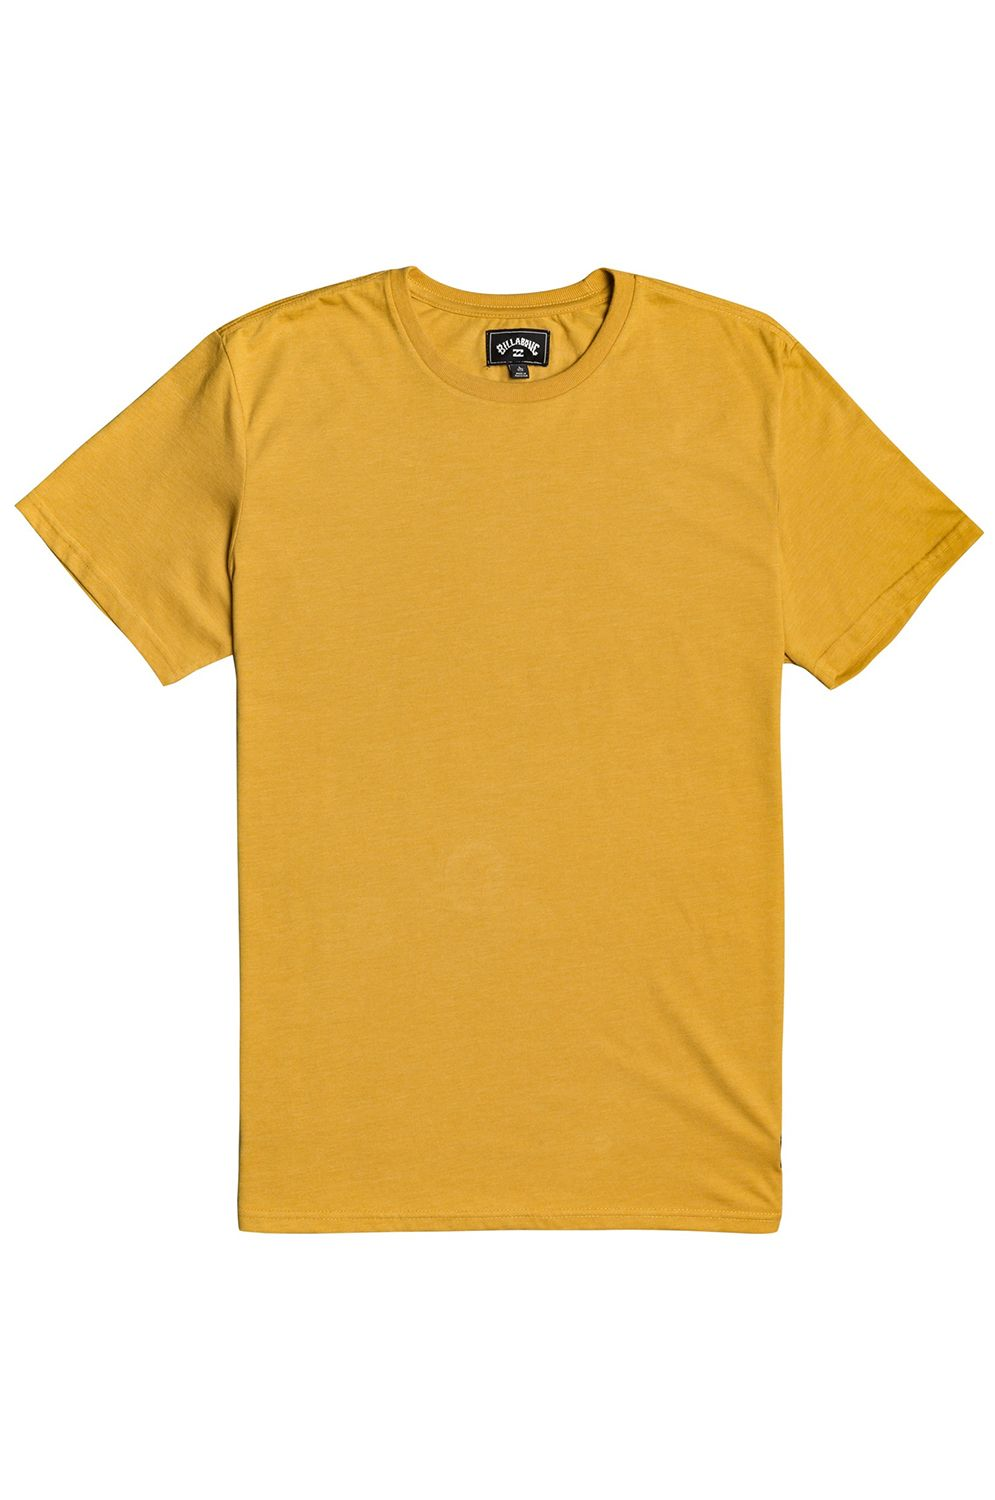 T-Shirt Billabong ALL DAY CREW SS Mustard